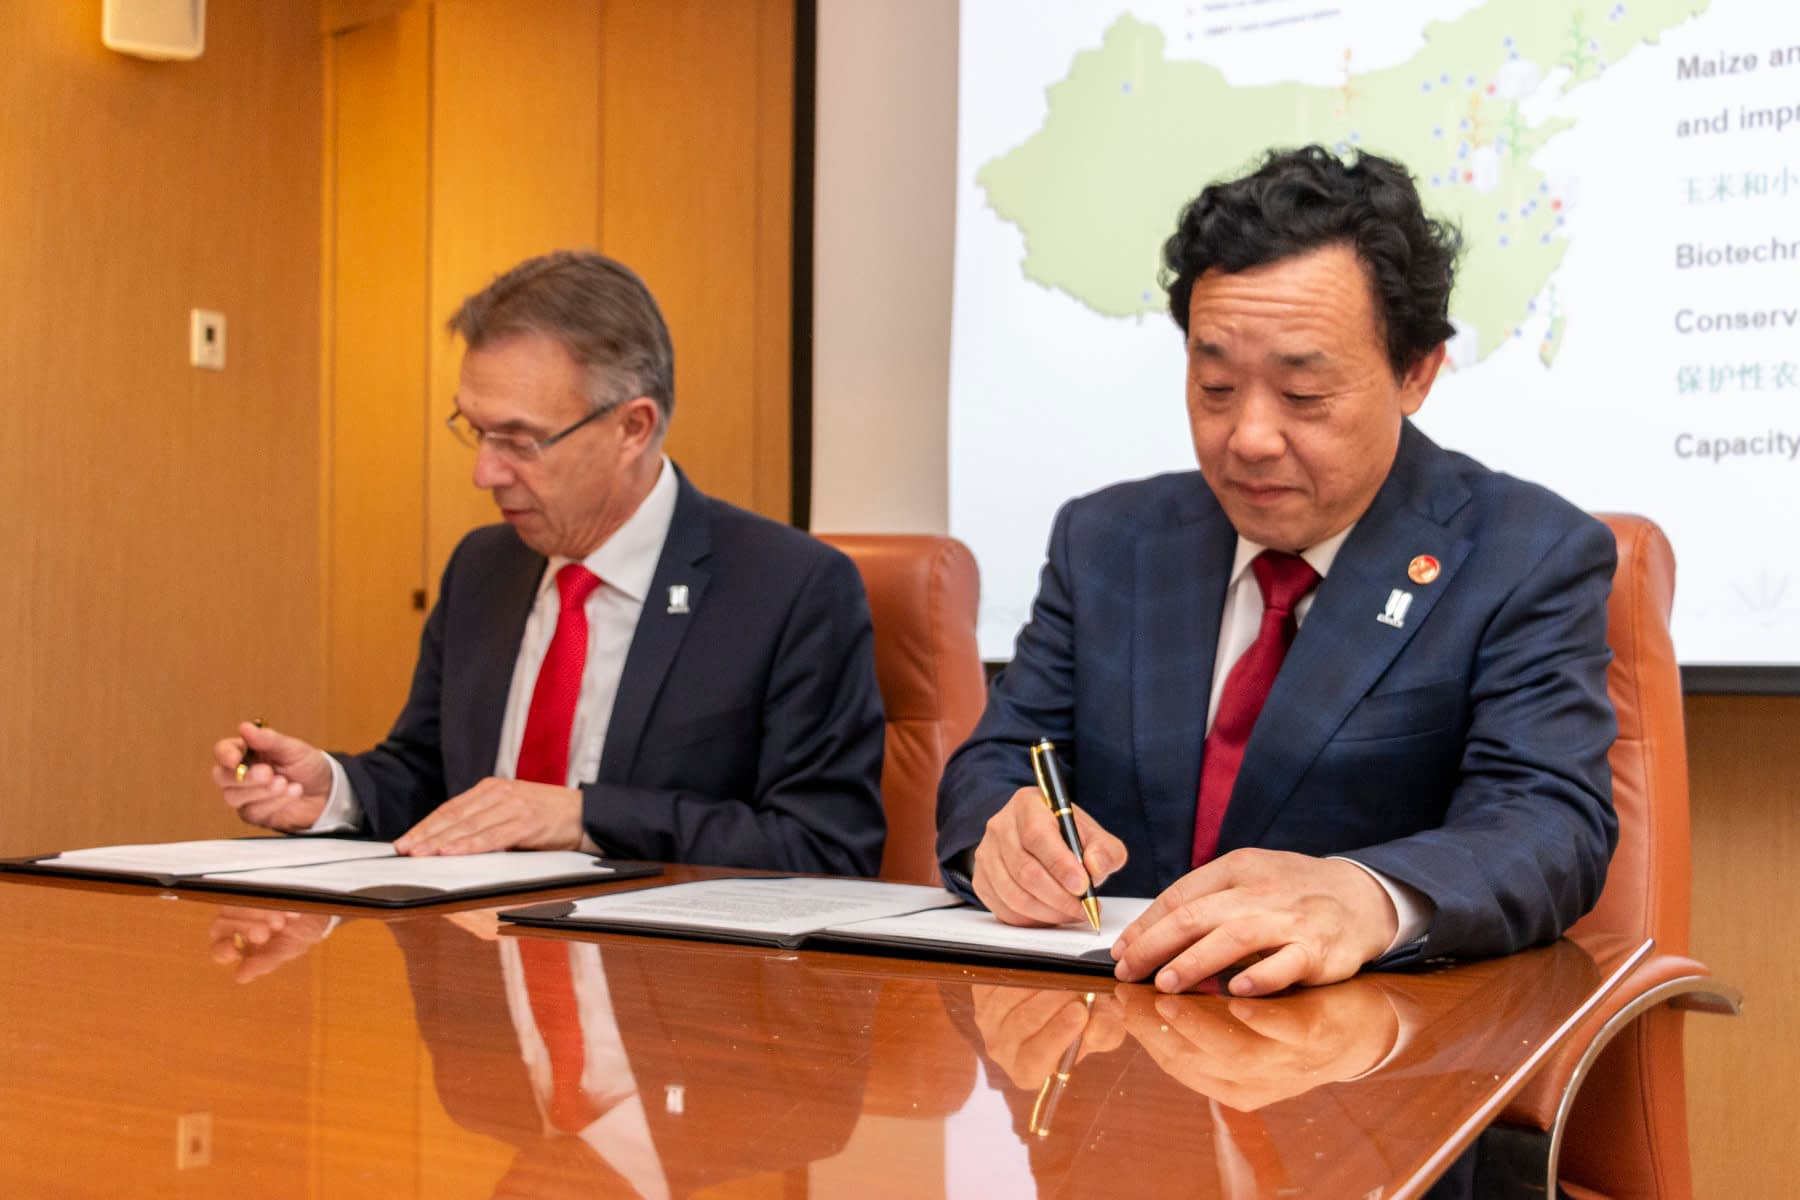 CIMMYT's director general Martin Kropff (left) and vice minister Qu Dongyu sign a memorandum of understanding for the establishment of a joint laboratory for maize and wheat improvement. (Photo: Gerardo Mejía/CIMMYT)